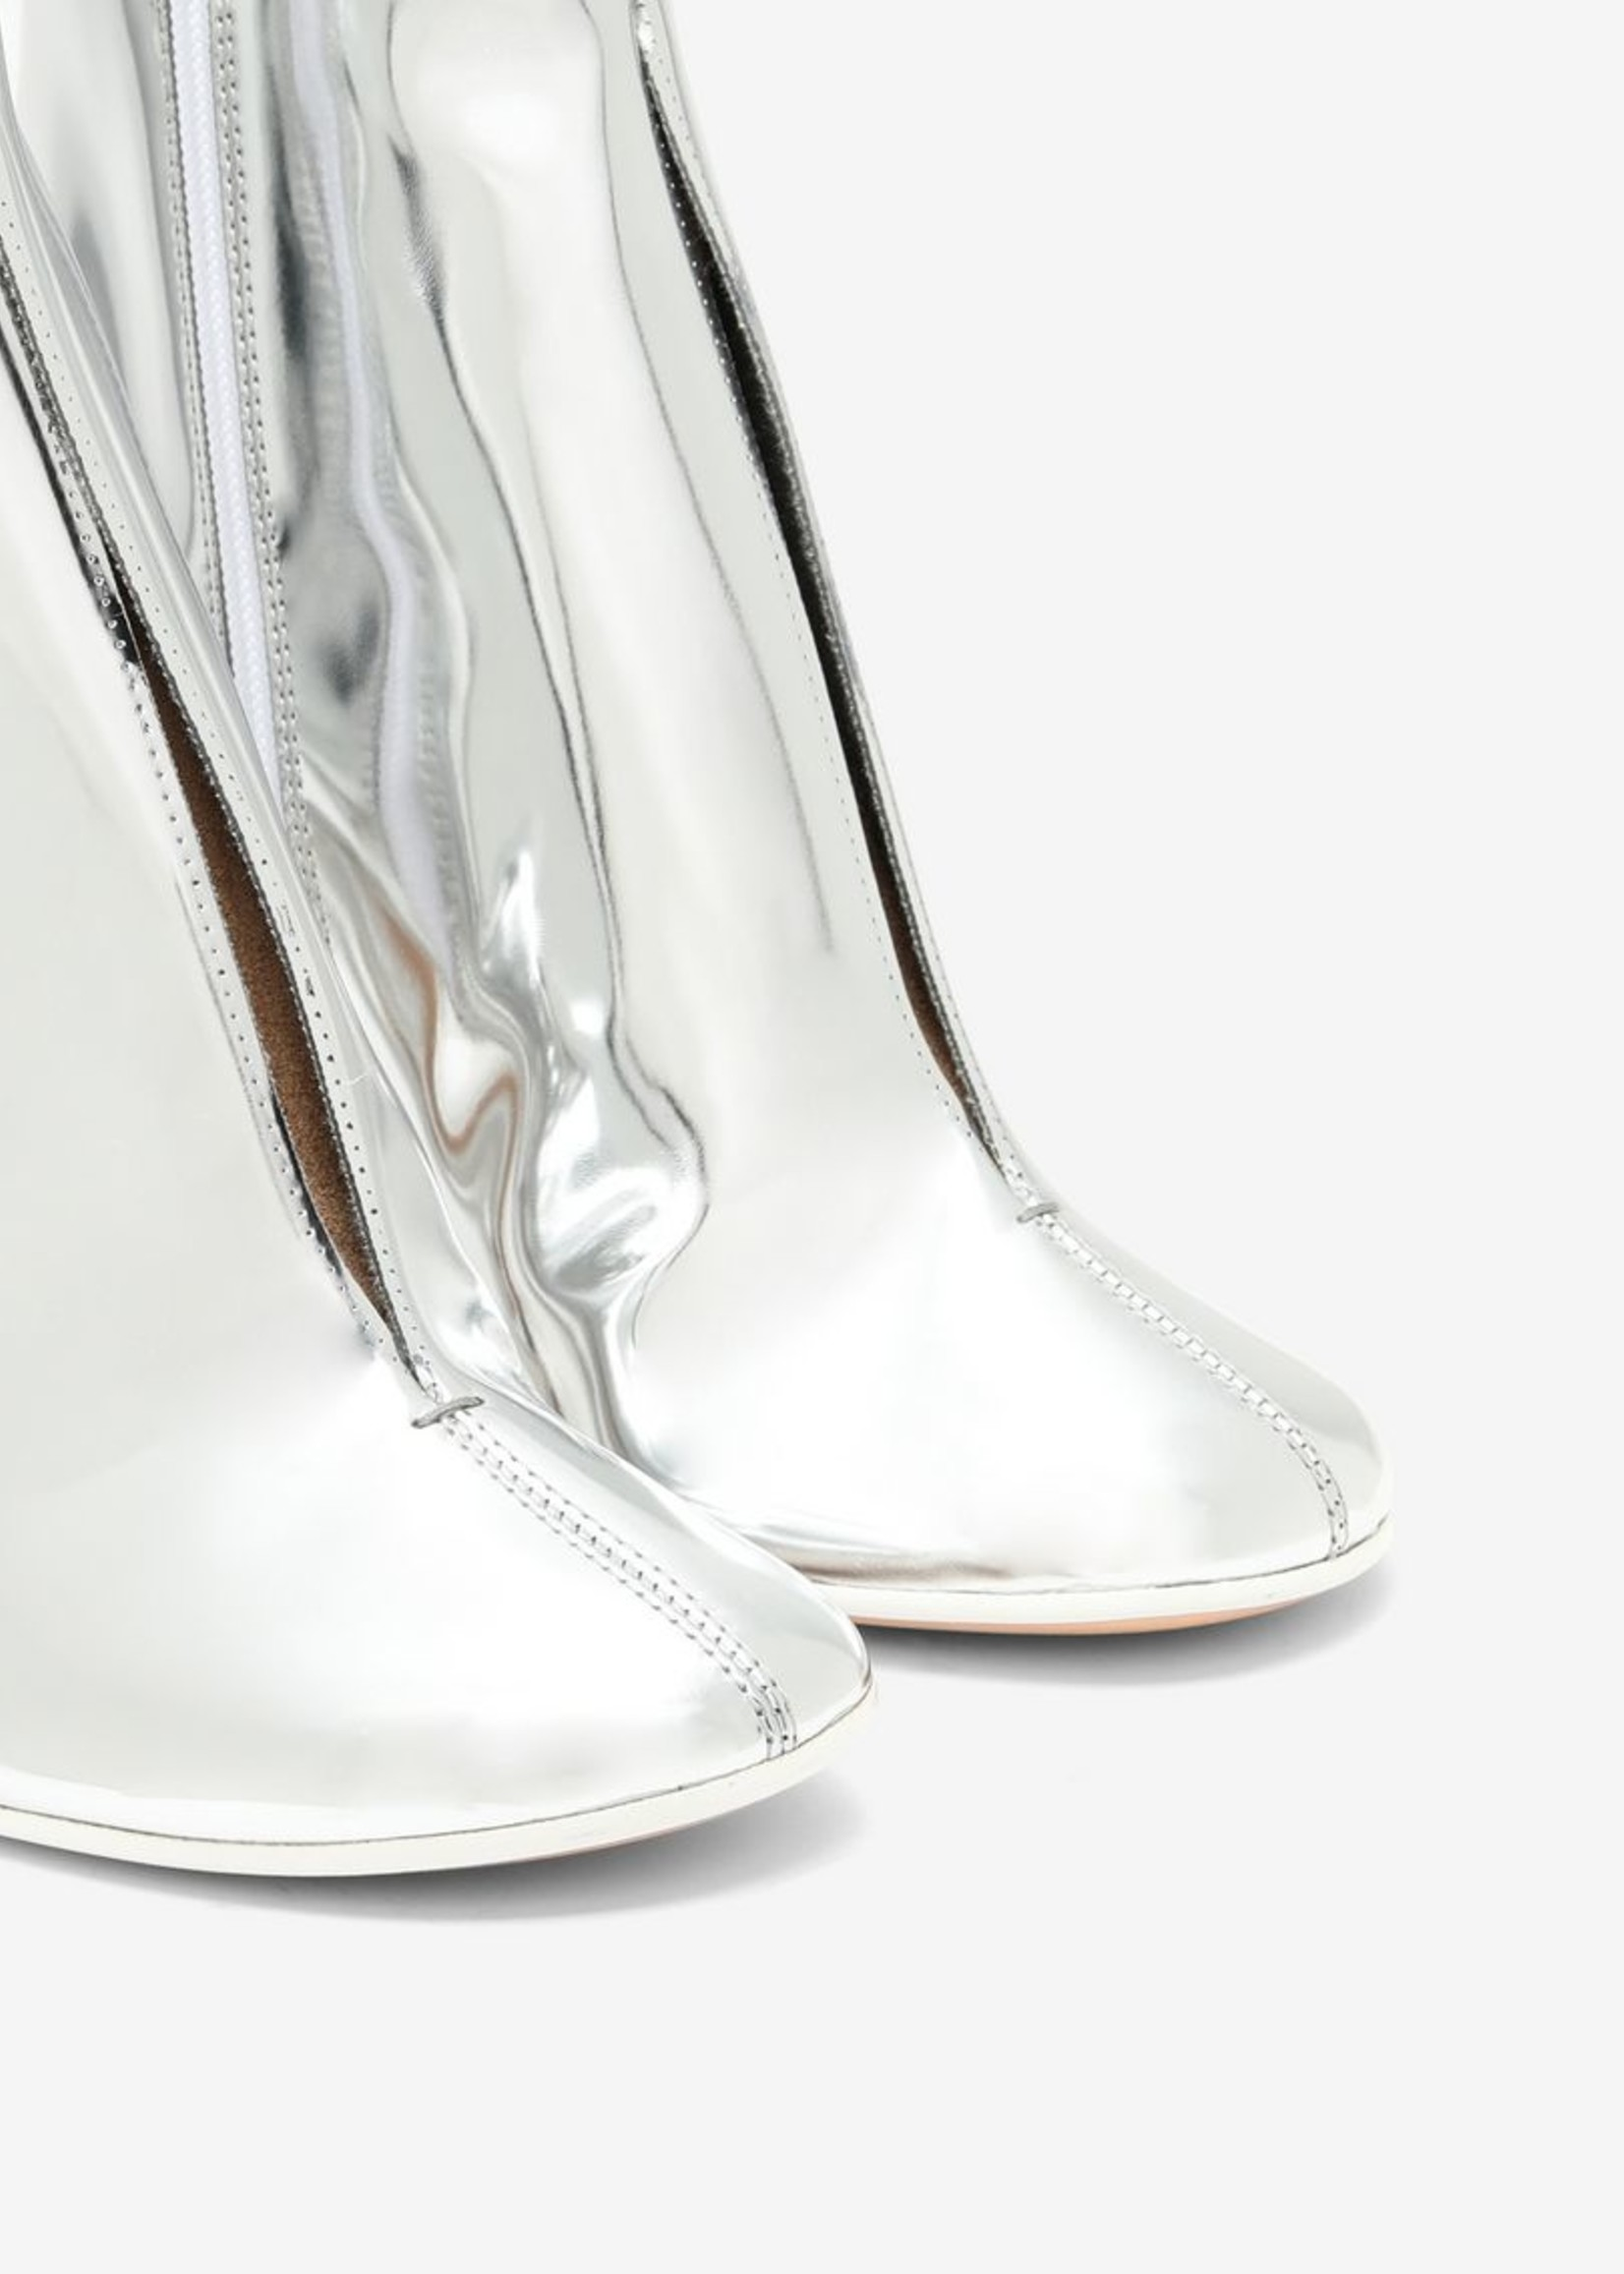 MM6 MAISON MARGIELA MM6 MAISON MARGIELA Split front Ankle boot in Mirror Silver